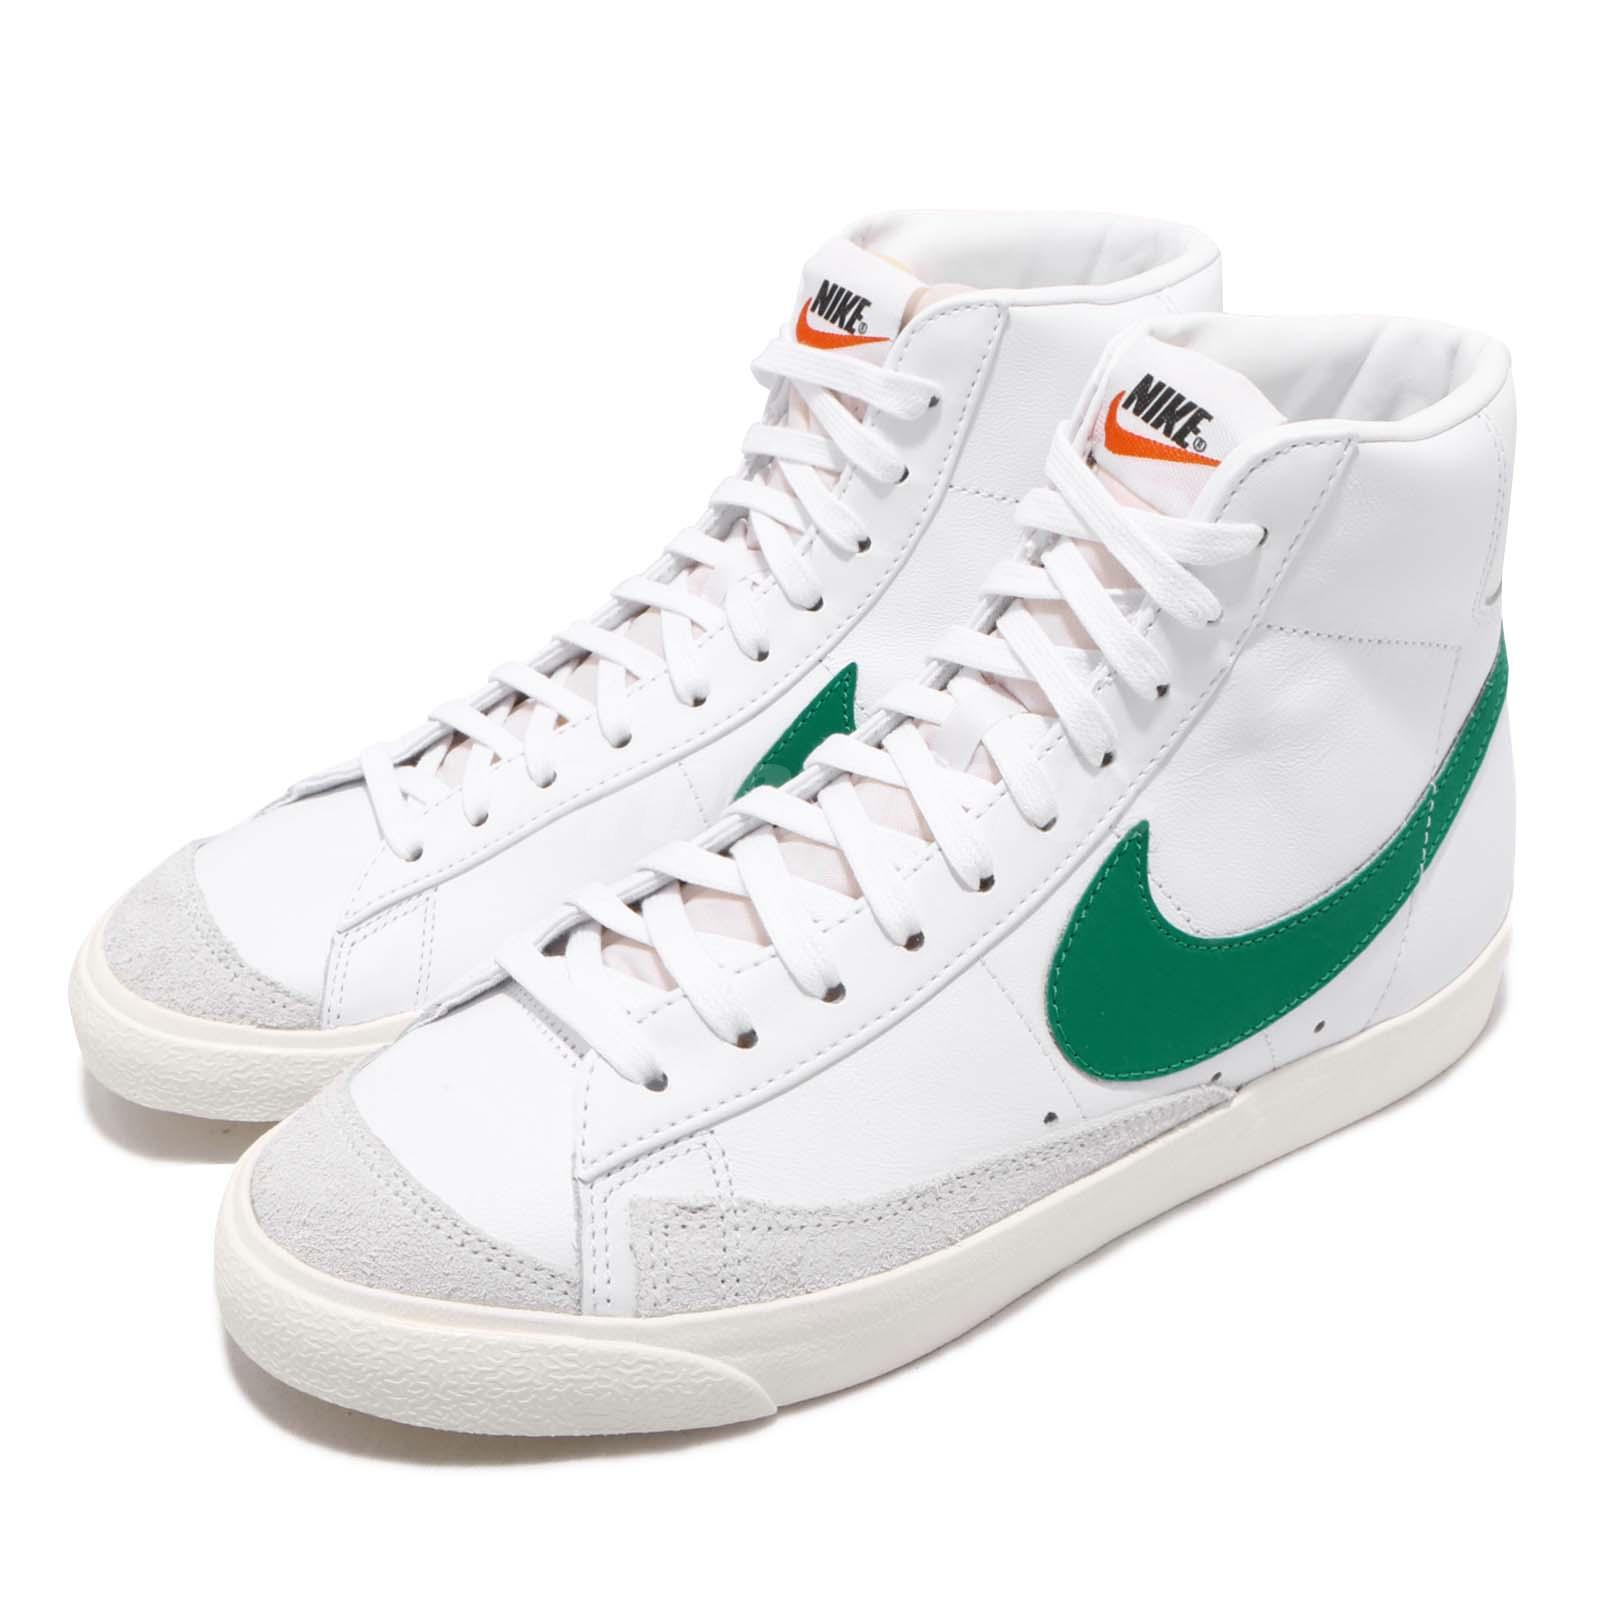 Details about Nike Blazer Mid 77 VNTG Vintage Lucid Green Sail Mens Casual  Shoes BQ6806-300 281f064c7